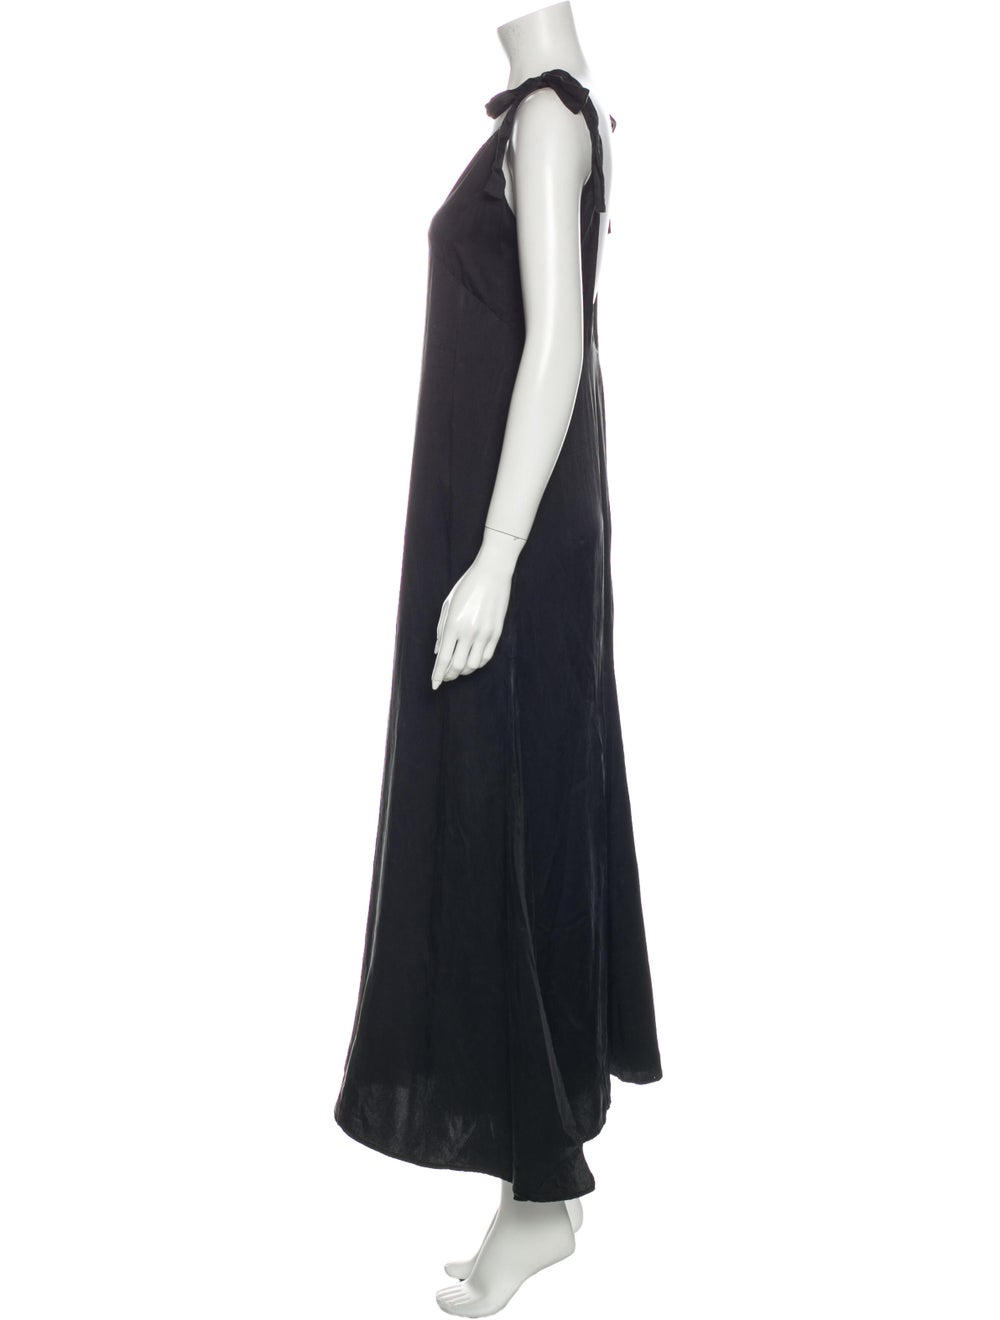 Reformation Silk Long Dress Black - image 2